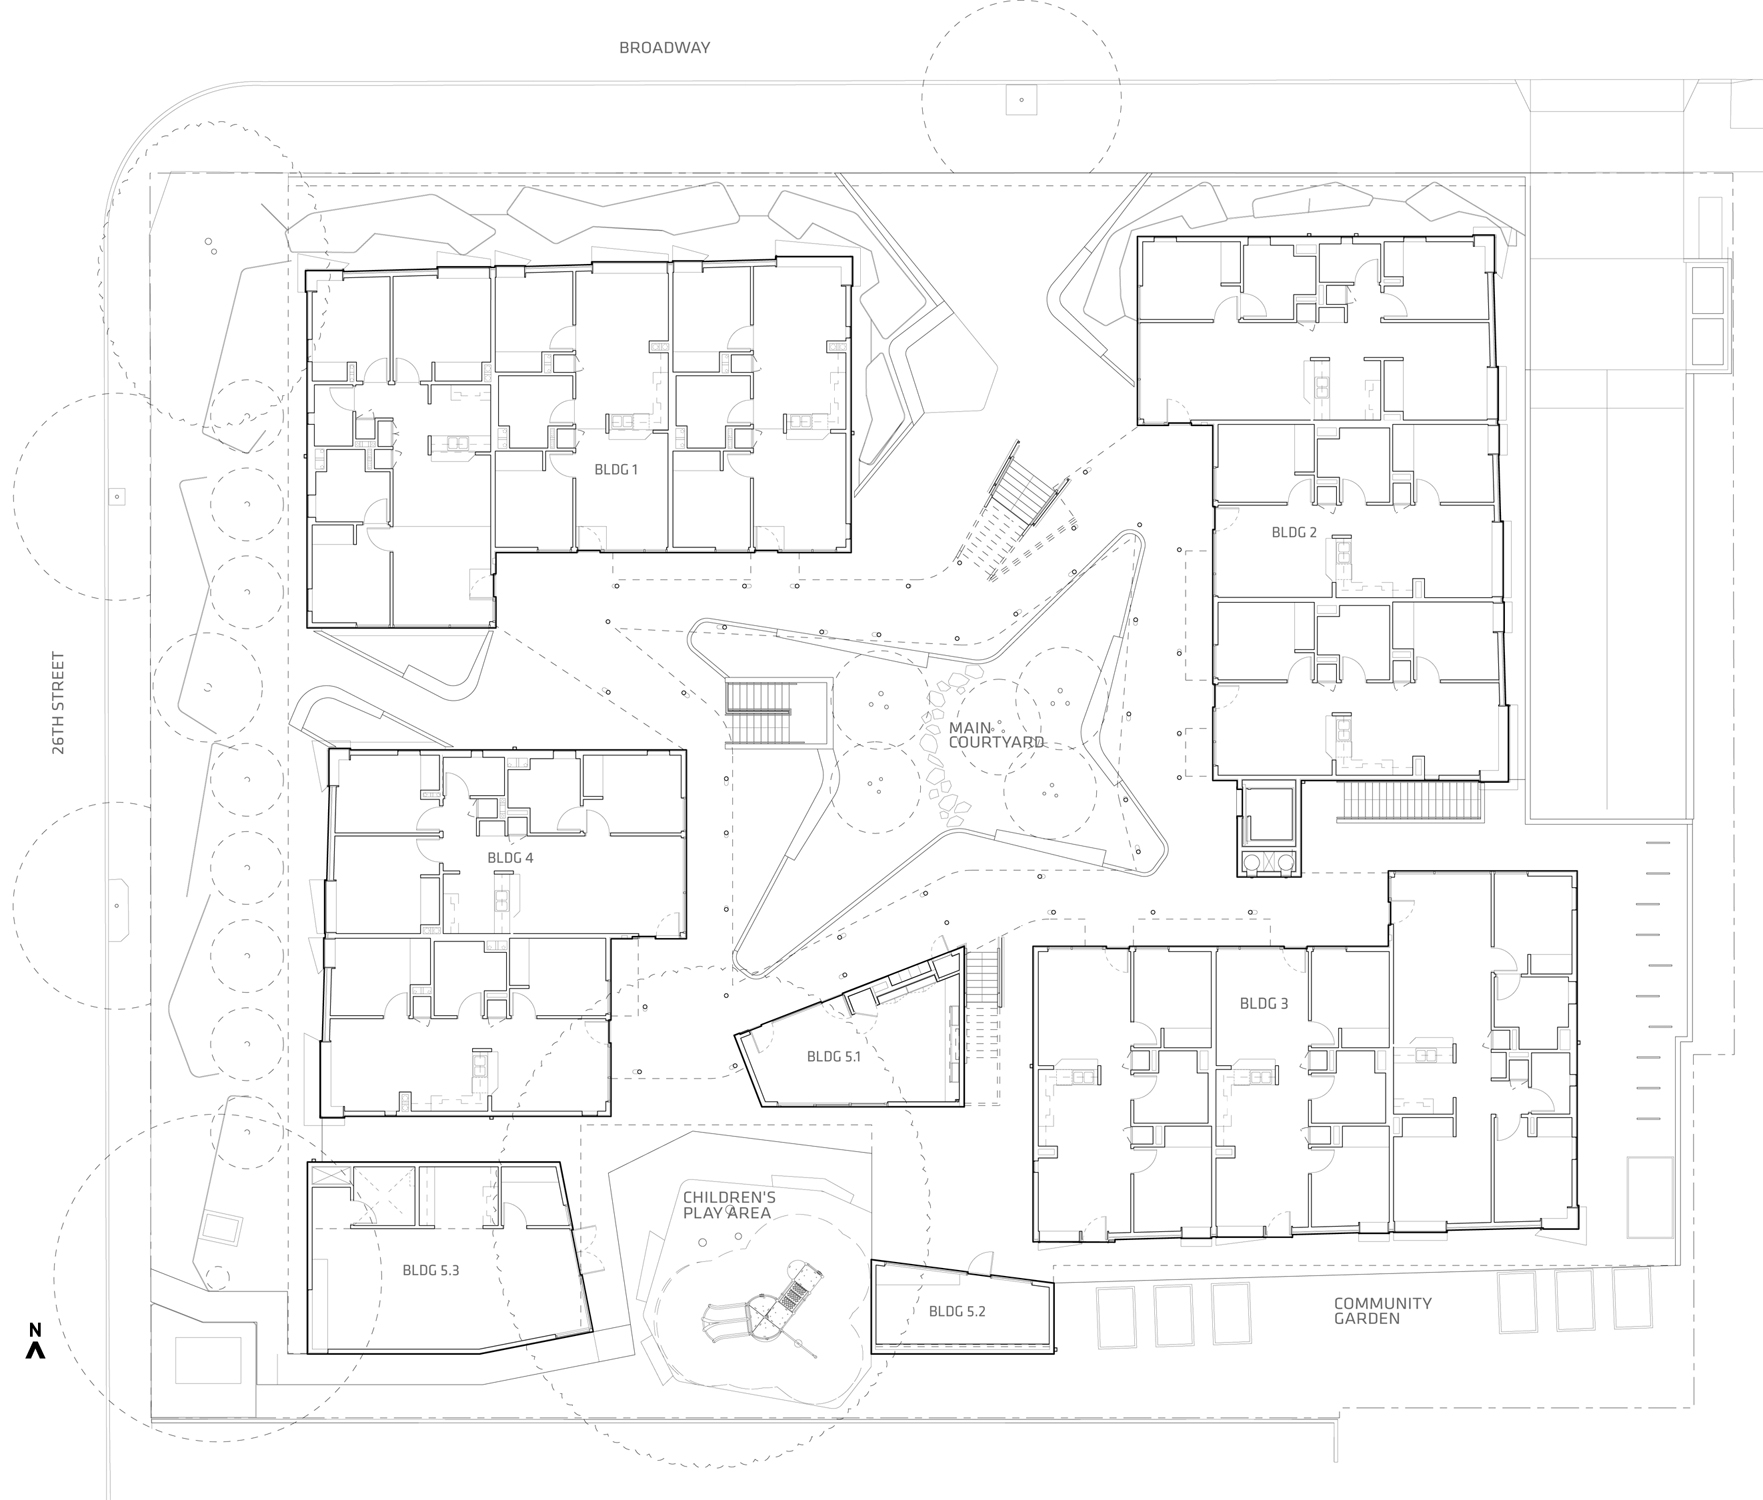 http://ad009cdnb.archdaily.net/wp-content/uploads/2014/05/536827b6c07a806b9b000011_broadway-housing-kevin-daly-architects_2013_siteplan.png